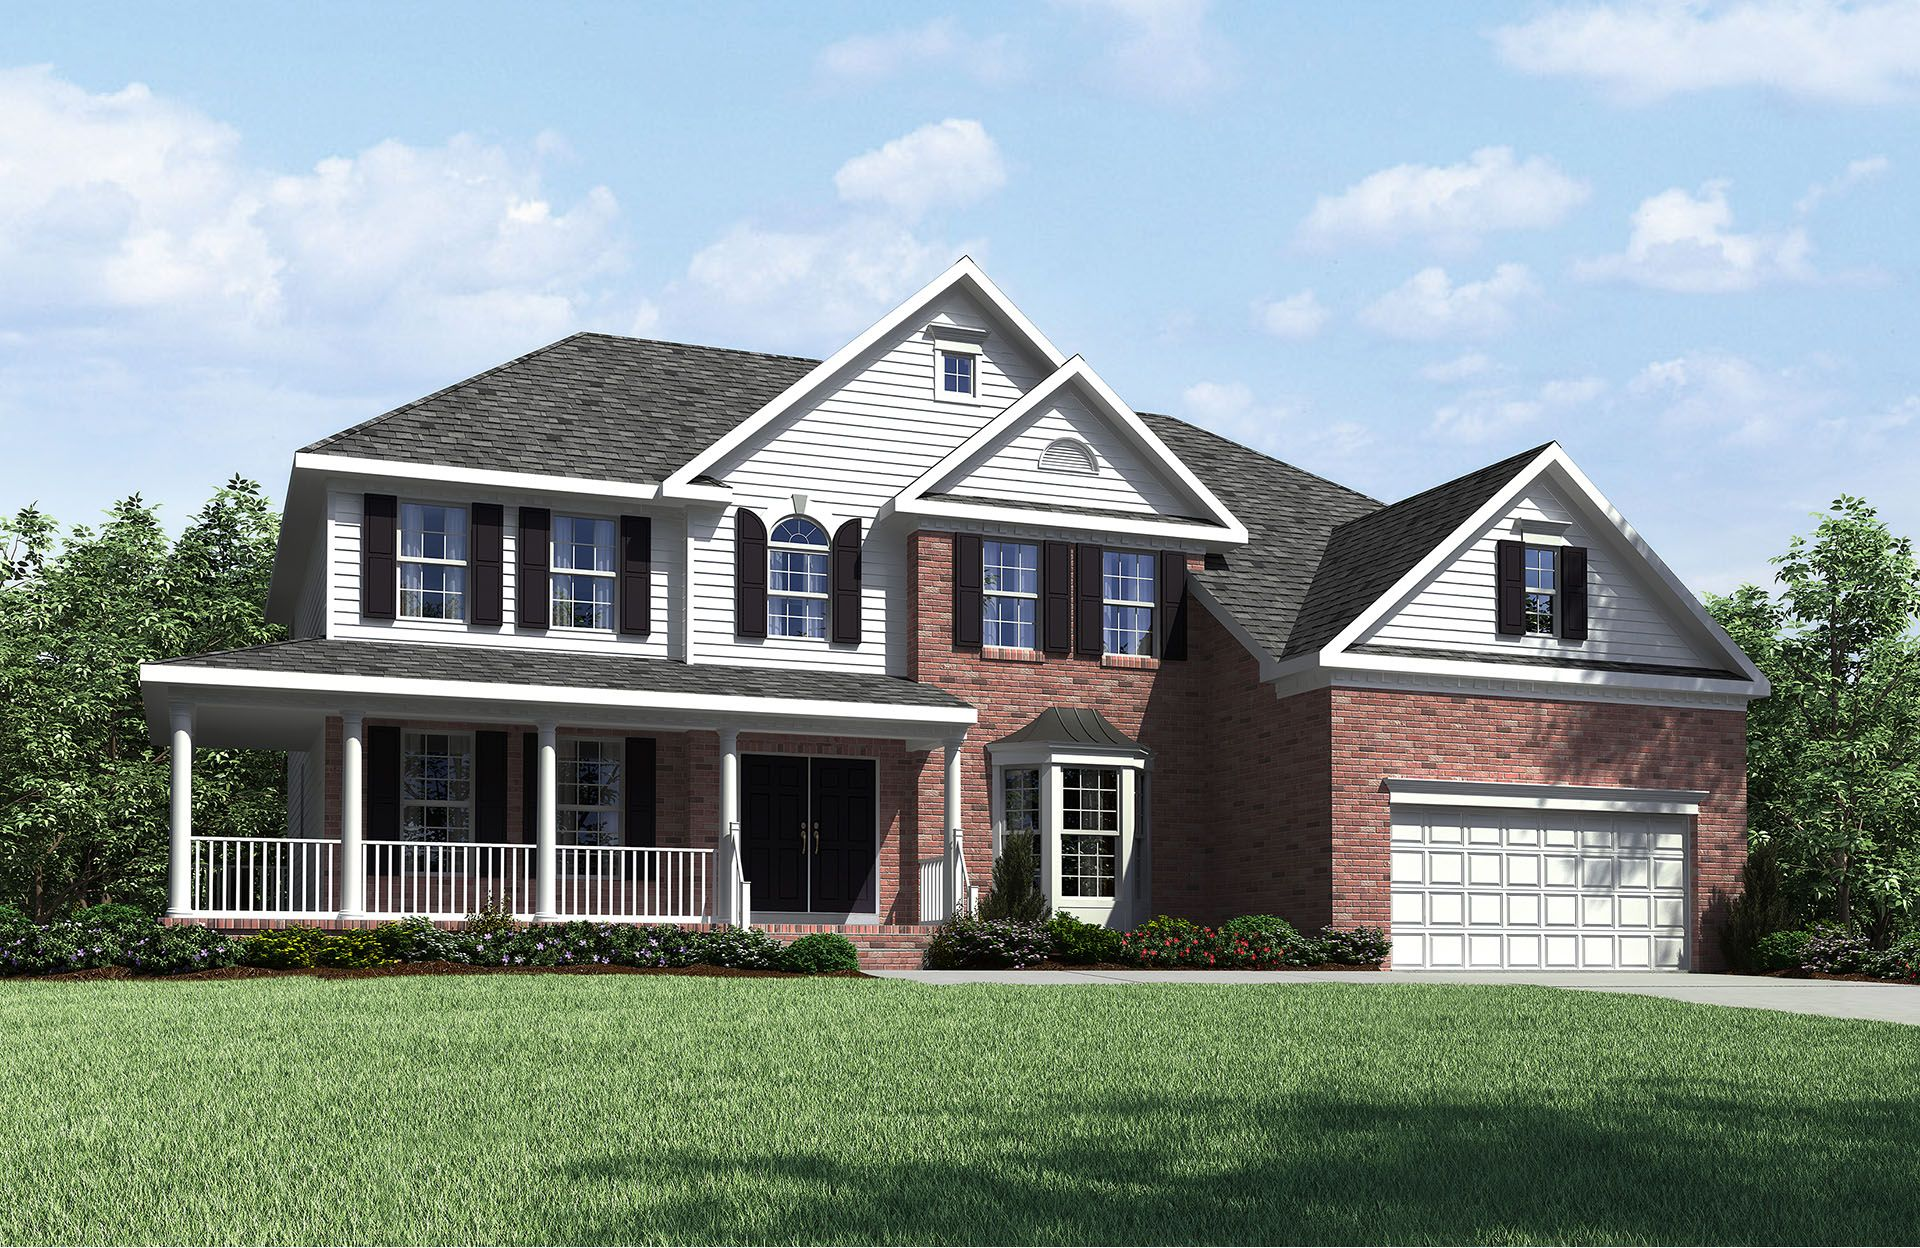 Single Family for Sale at Cabe Crossing - Langdon 2051 Greenbrook Lane Durham, North Carolina 27705 United States